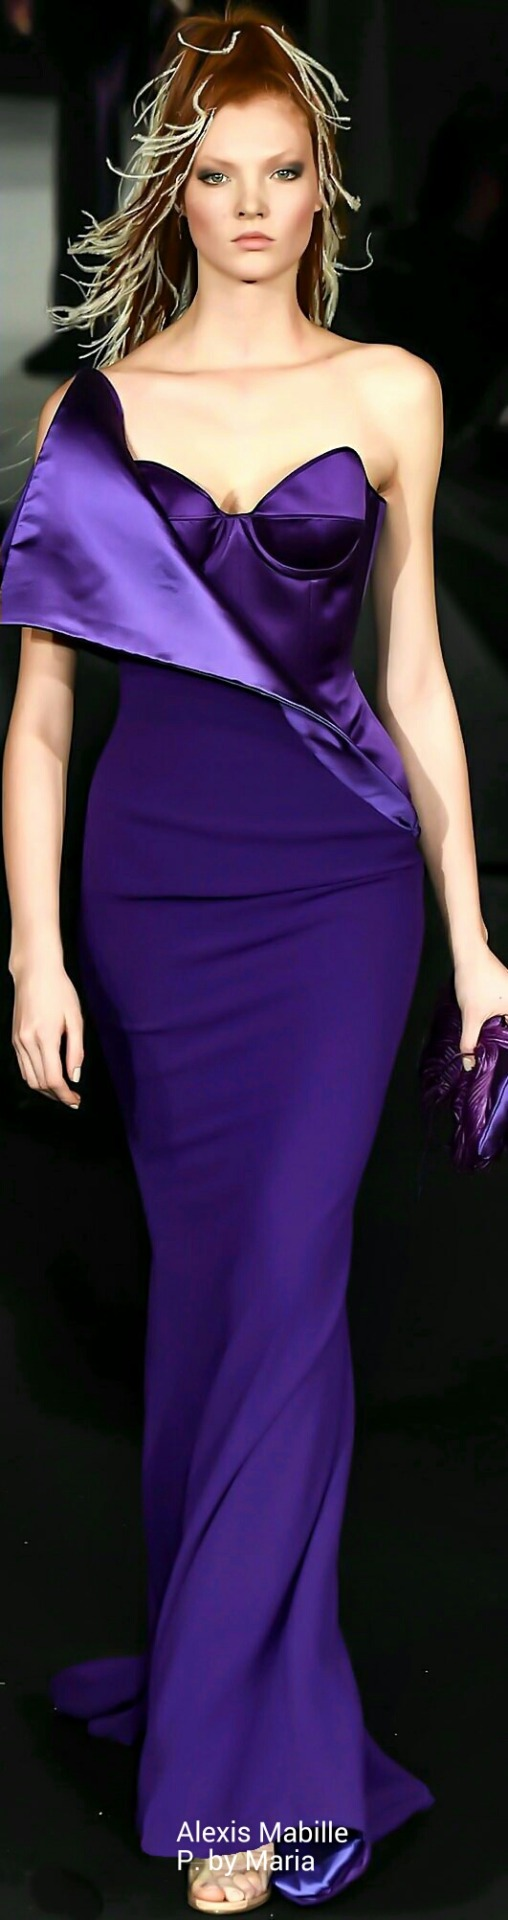 Alexis Mabille Spring Haute Couture 2015